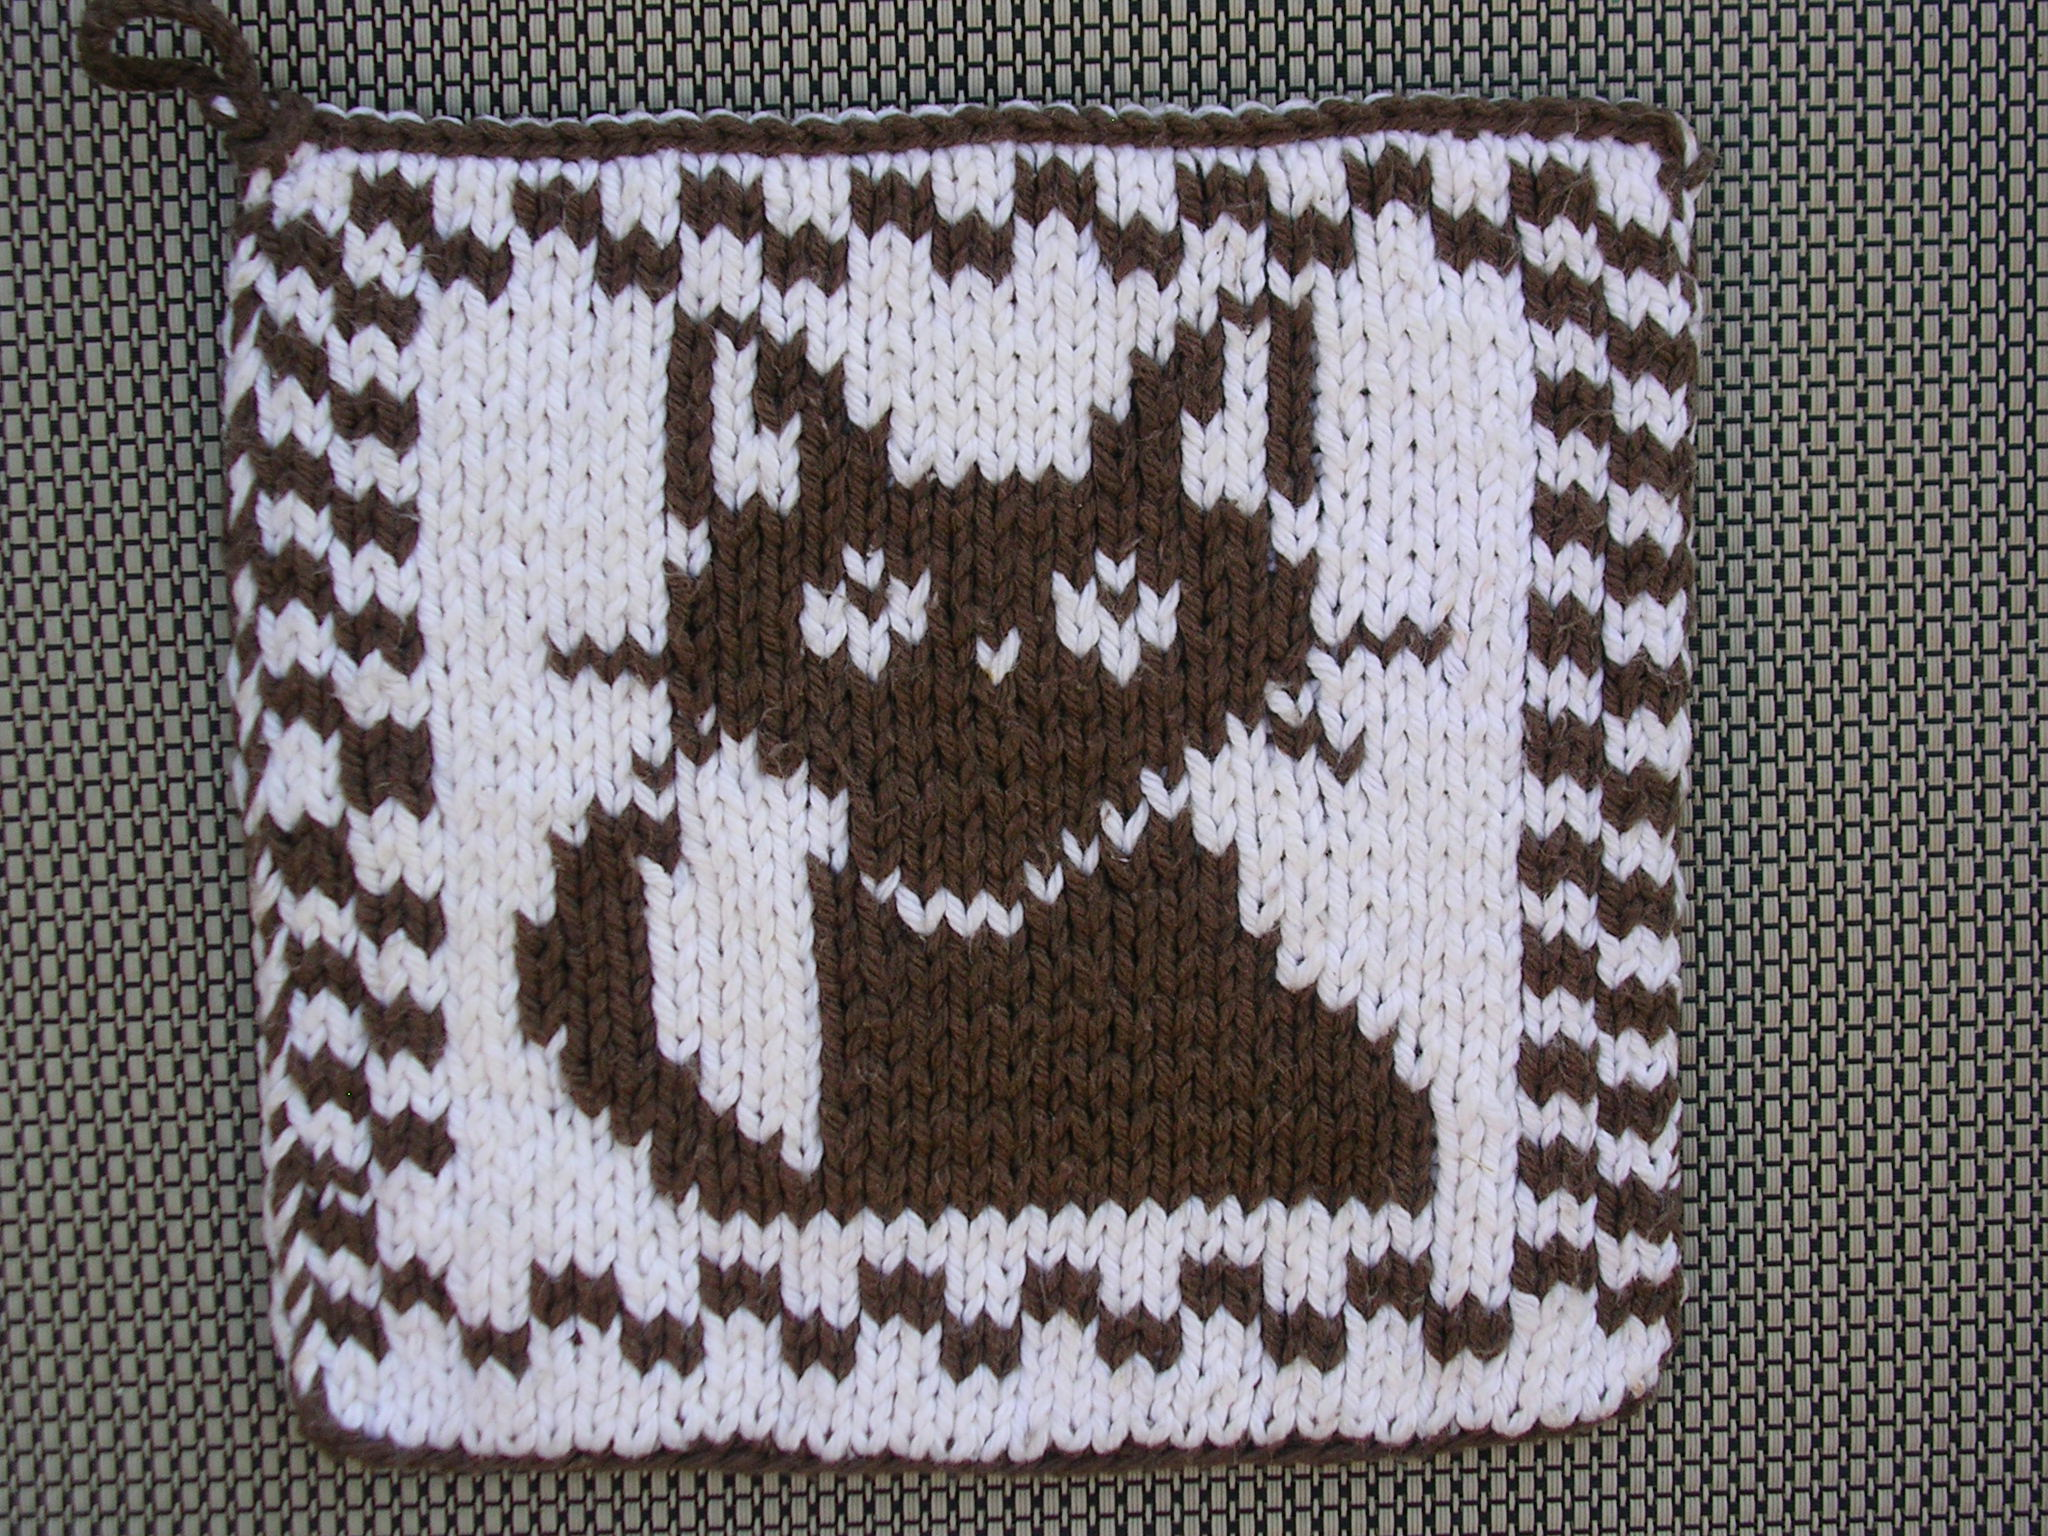 Pot Holder Knitting Pattern : Cat Pot Holder double knit sg-creations